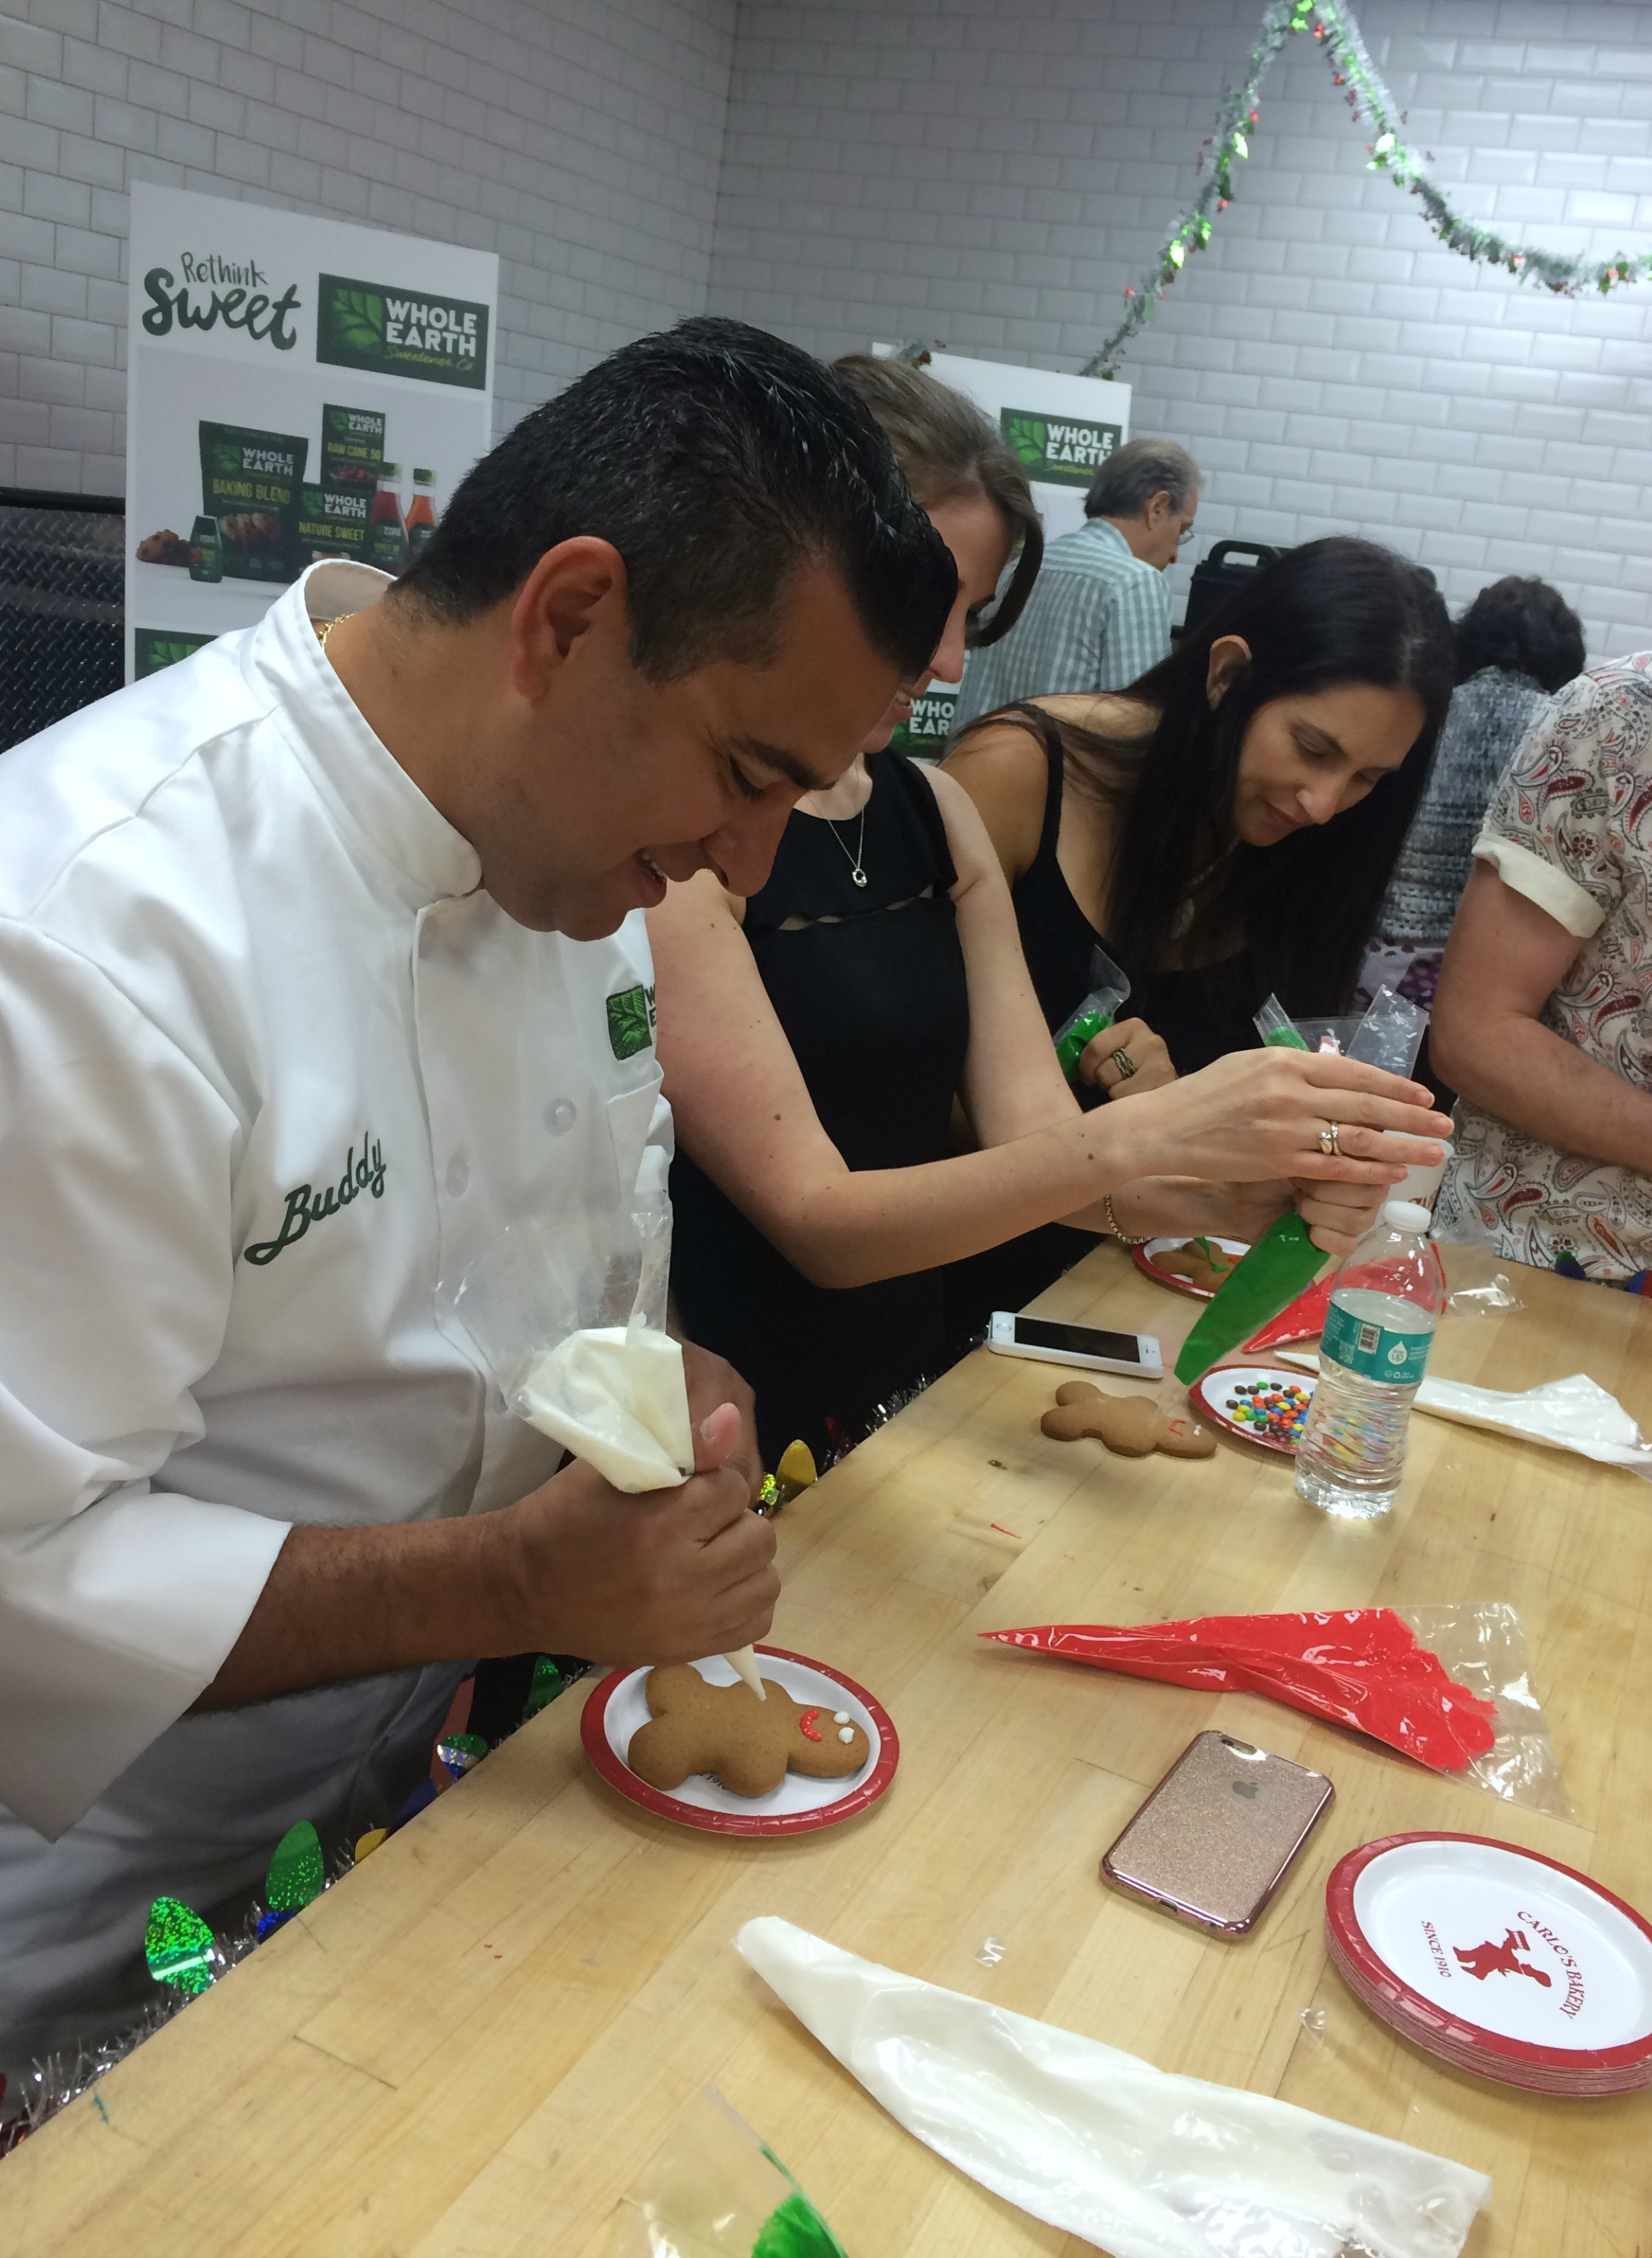 decorating-cookies-with-buddy-valastro